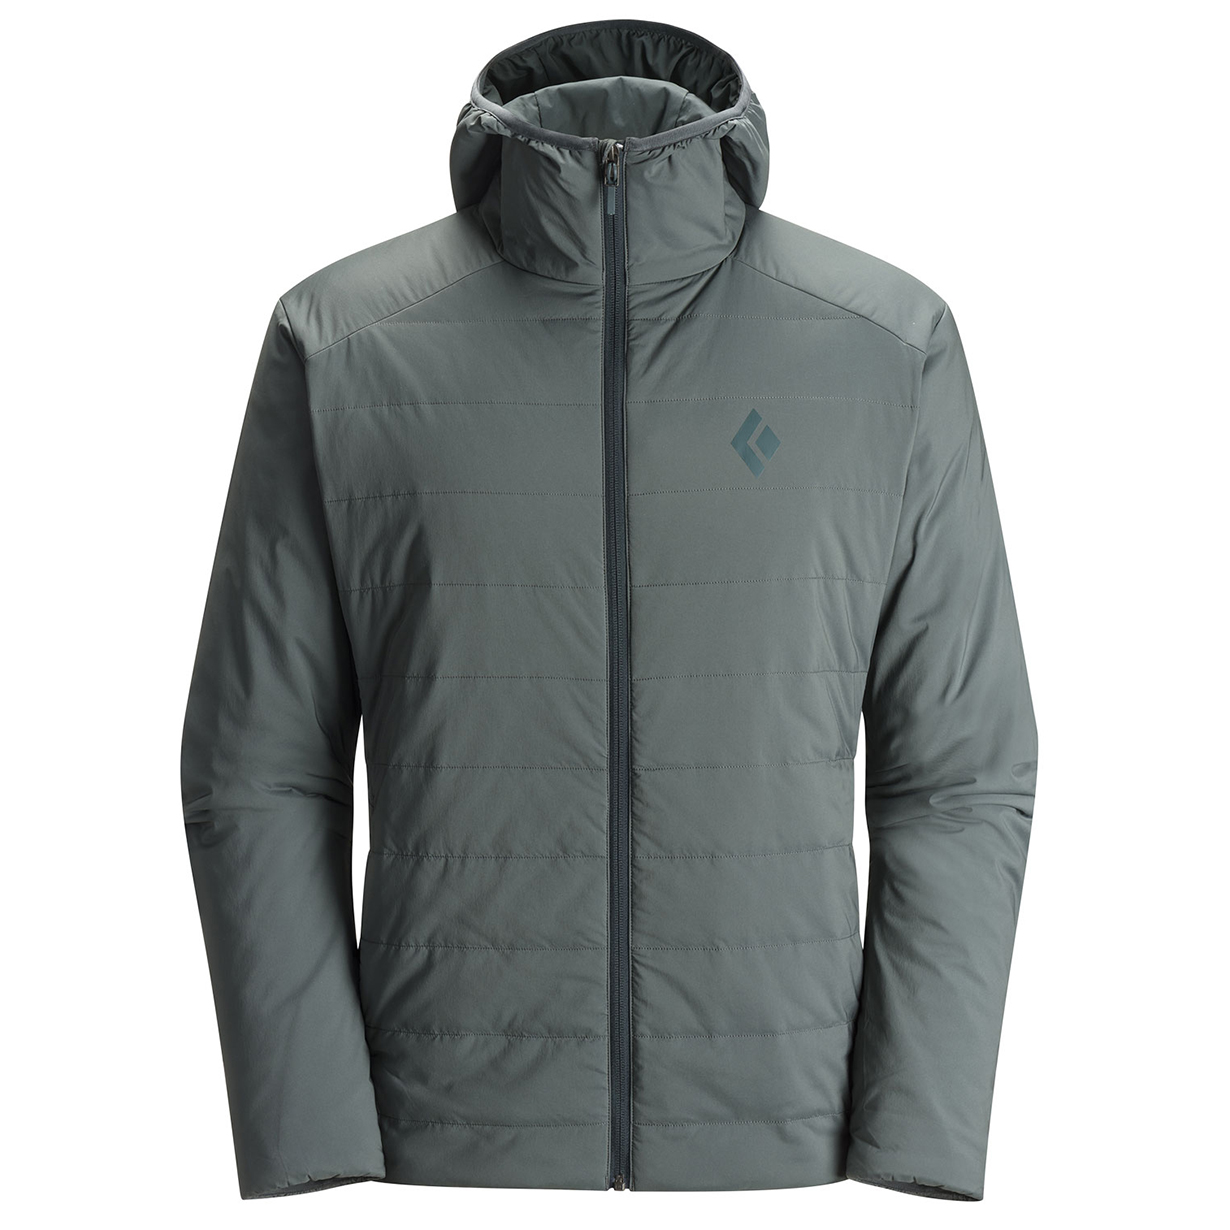 Matt Zia reviews the Black Diamond First Light Hoody for Blister